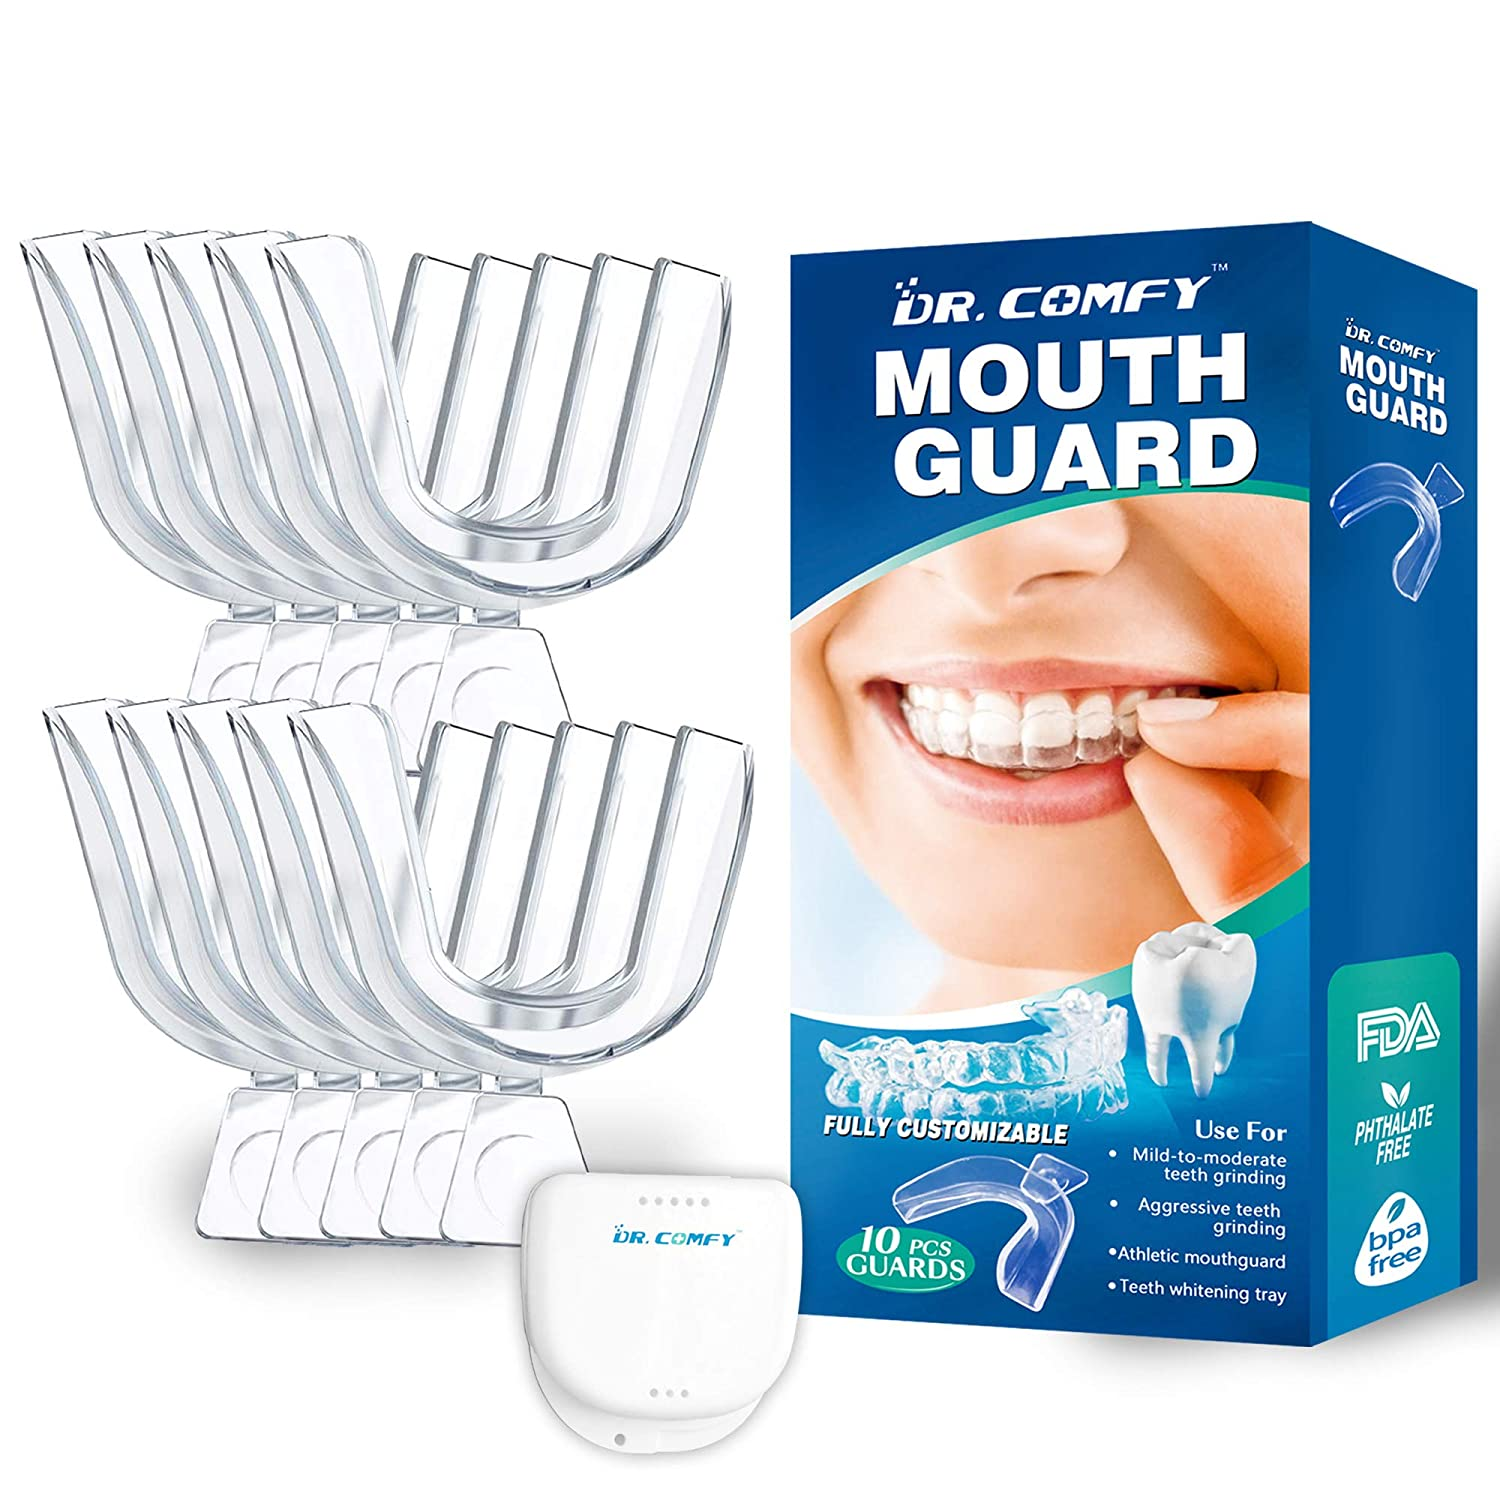 Professional Mouth Guard for Grinding Teeth - Upgraded Dental Guard For Teeth Grinding, Anti Grinding Dental Night Guard, Stops Bruxism, Eliminates Teeth Clenching, Case Include-10PS